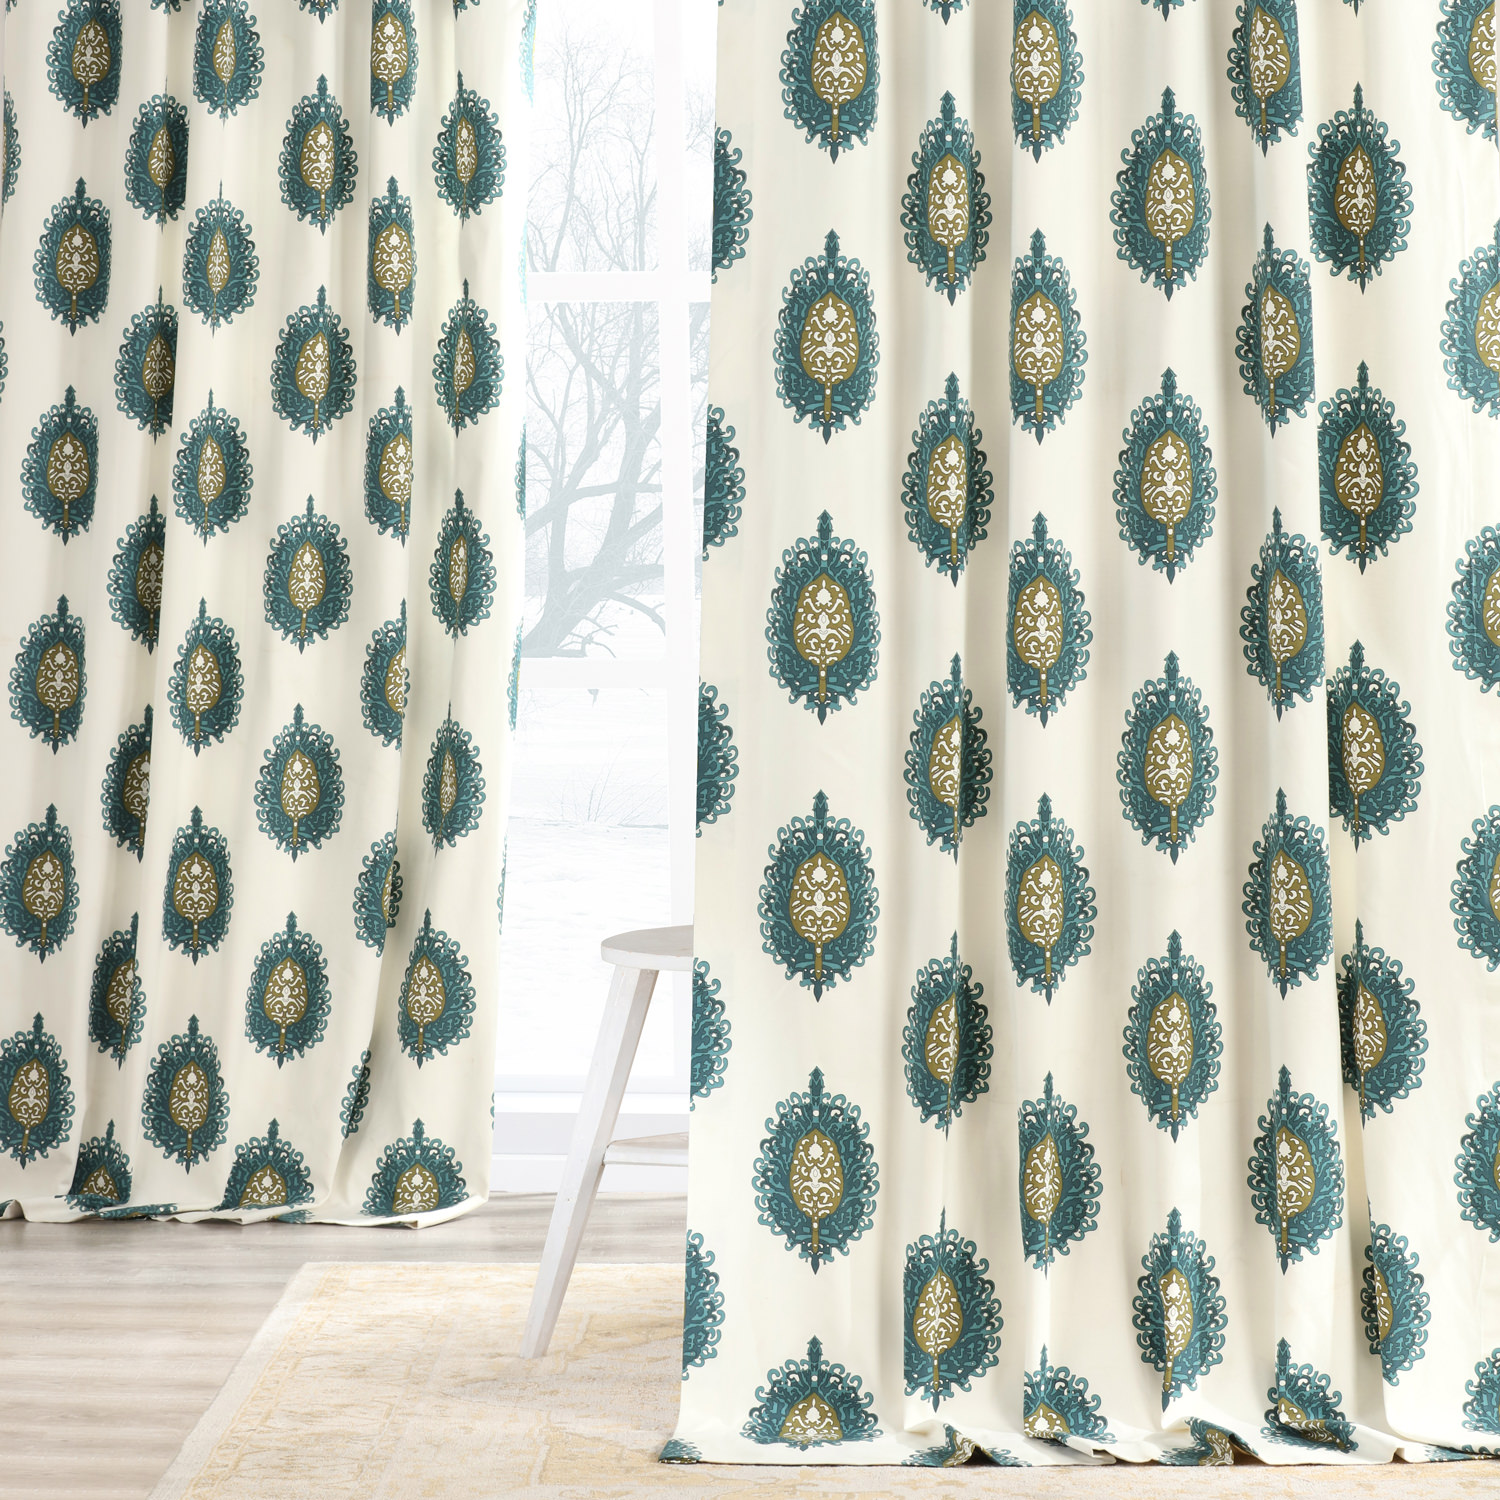 Mayan Teal Printed Cotton Curtain